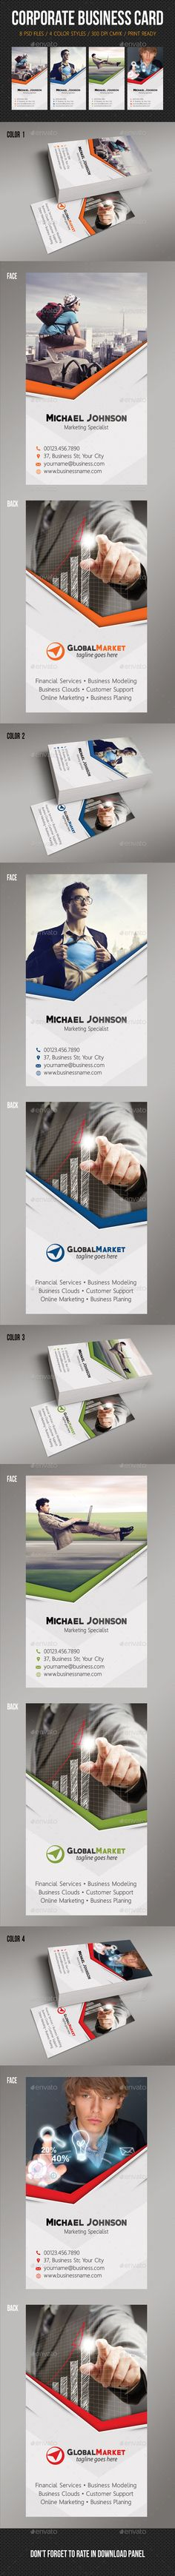 Corporate Business Card Design Tempalte Download: http://graphicriver.net/item/corporate-business-card-13/12943621?ref=ksioks